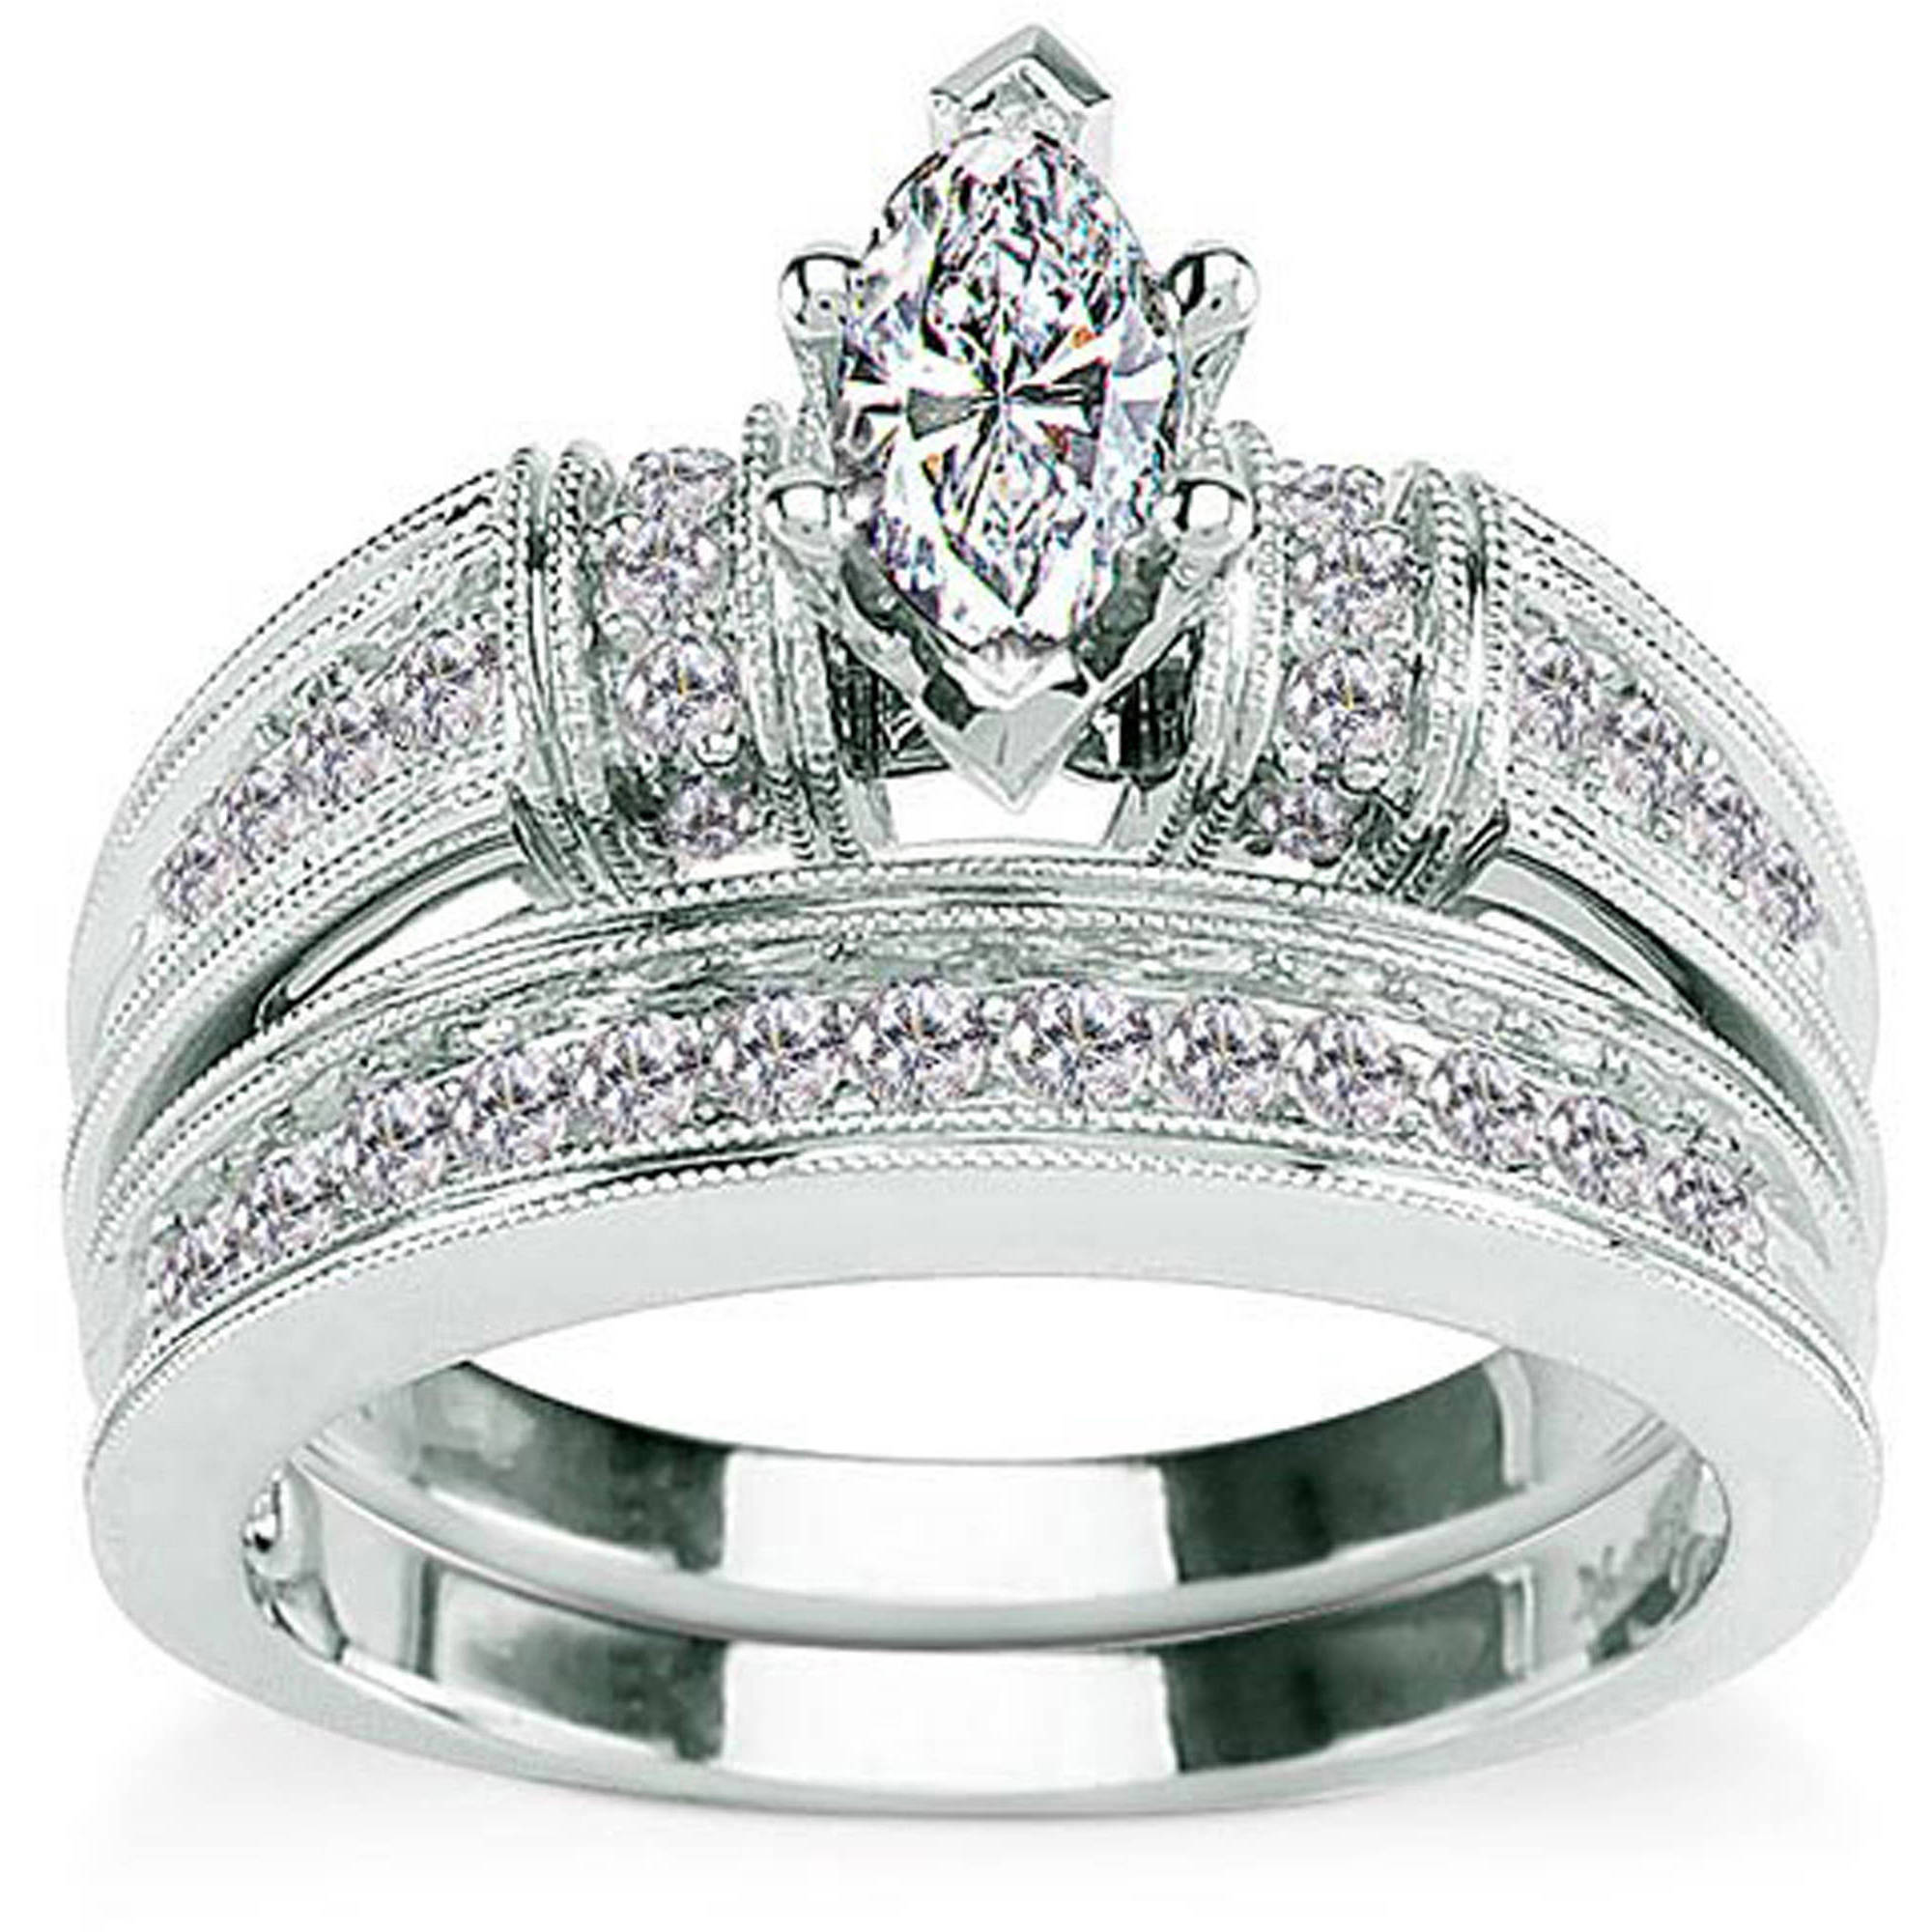 set rings crossover wedding diamond collection piece one platinum goldsmiths ring mccaul